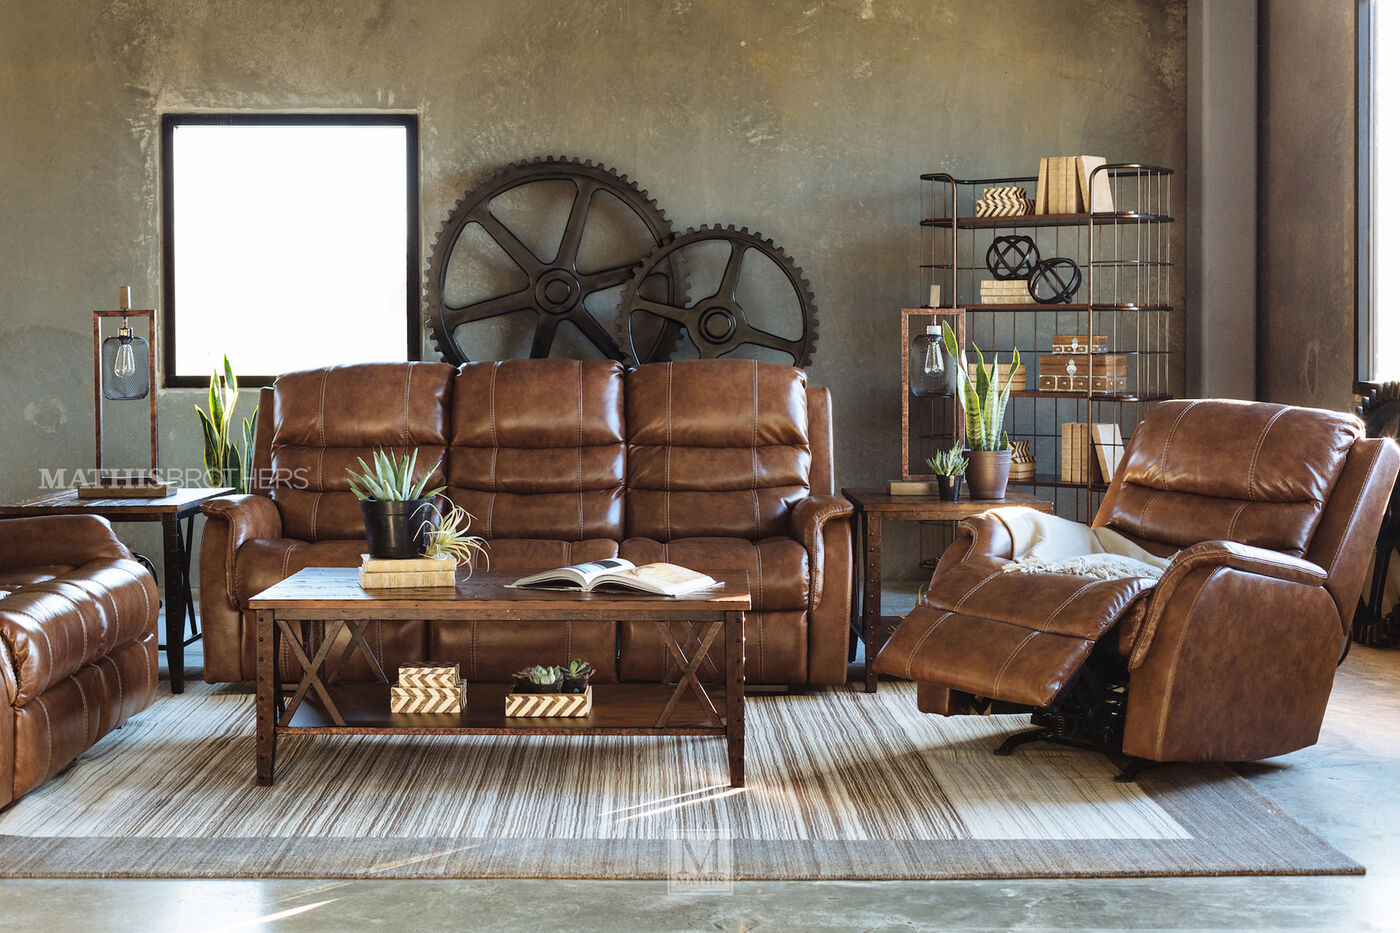 Power Reclining 82 Quot Sofa With Adjustable Headrest In Brown